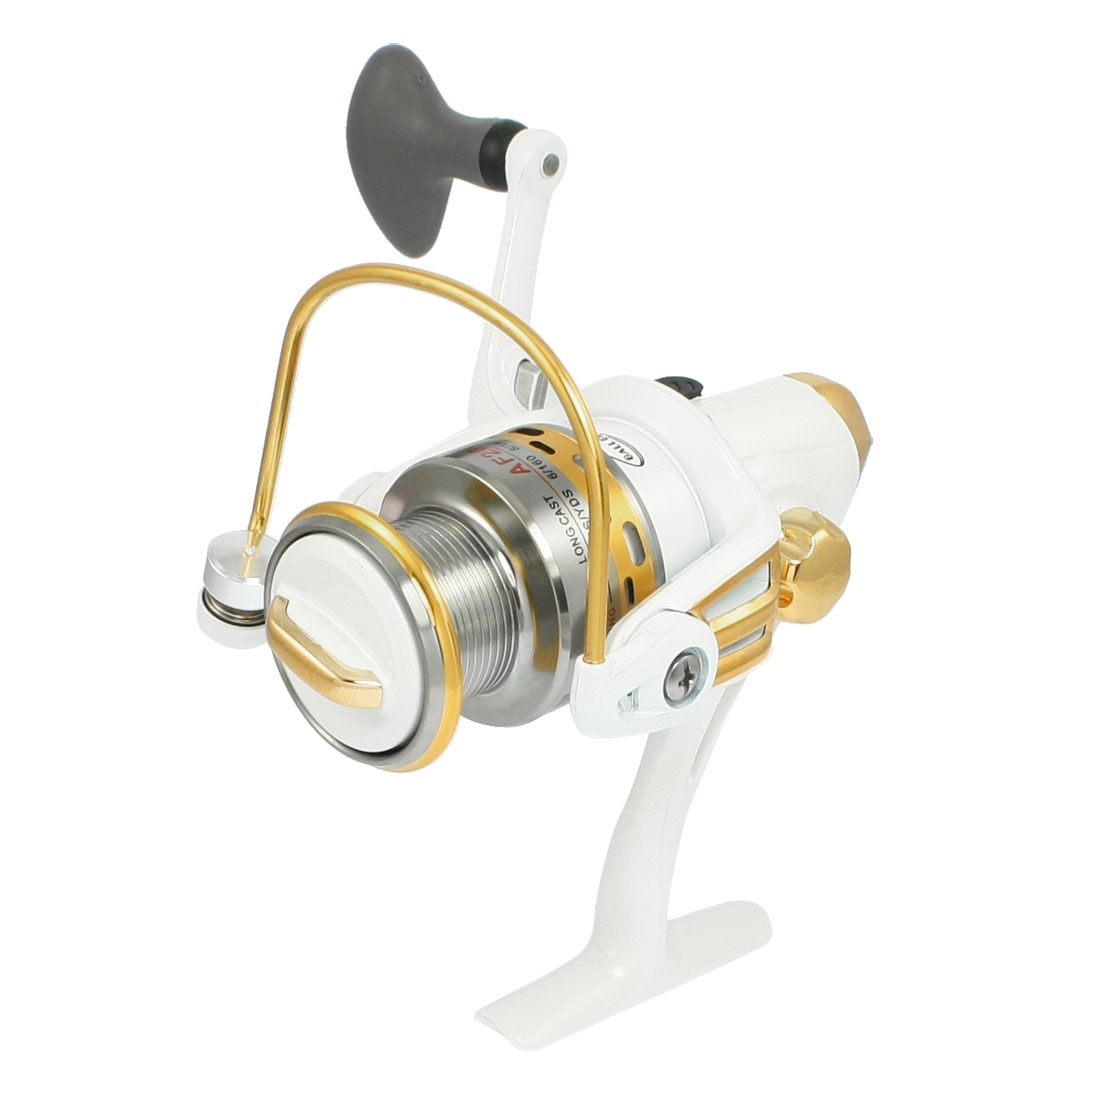 Offwhite Gear Ratio 5.5:1 3-Ball Bearings Fishing Spinning Reel AF2000